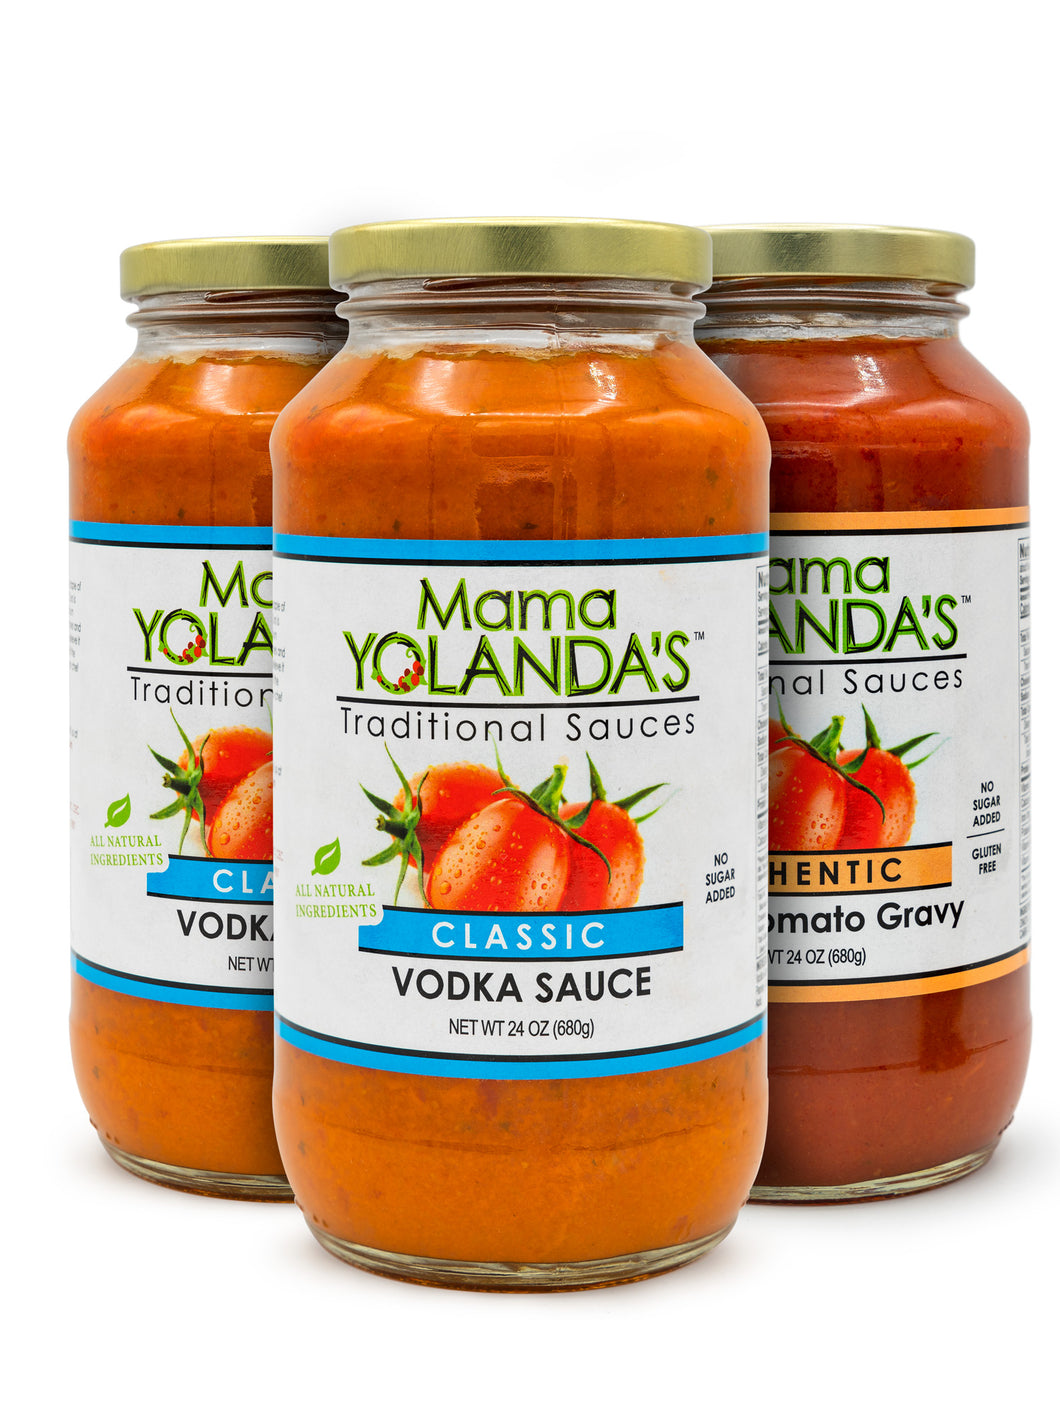 Special Pack: Two jars of Classic Vodka Sauce and One jar of Authentic Italian Tomato Gravy